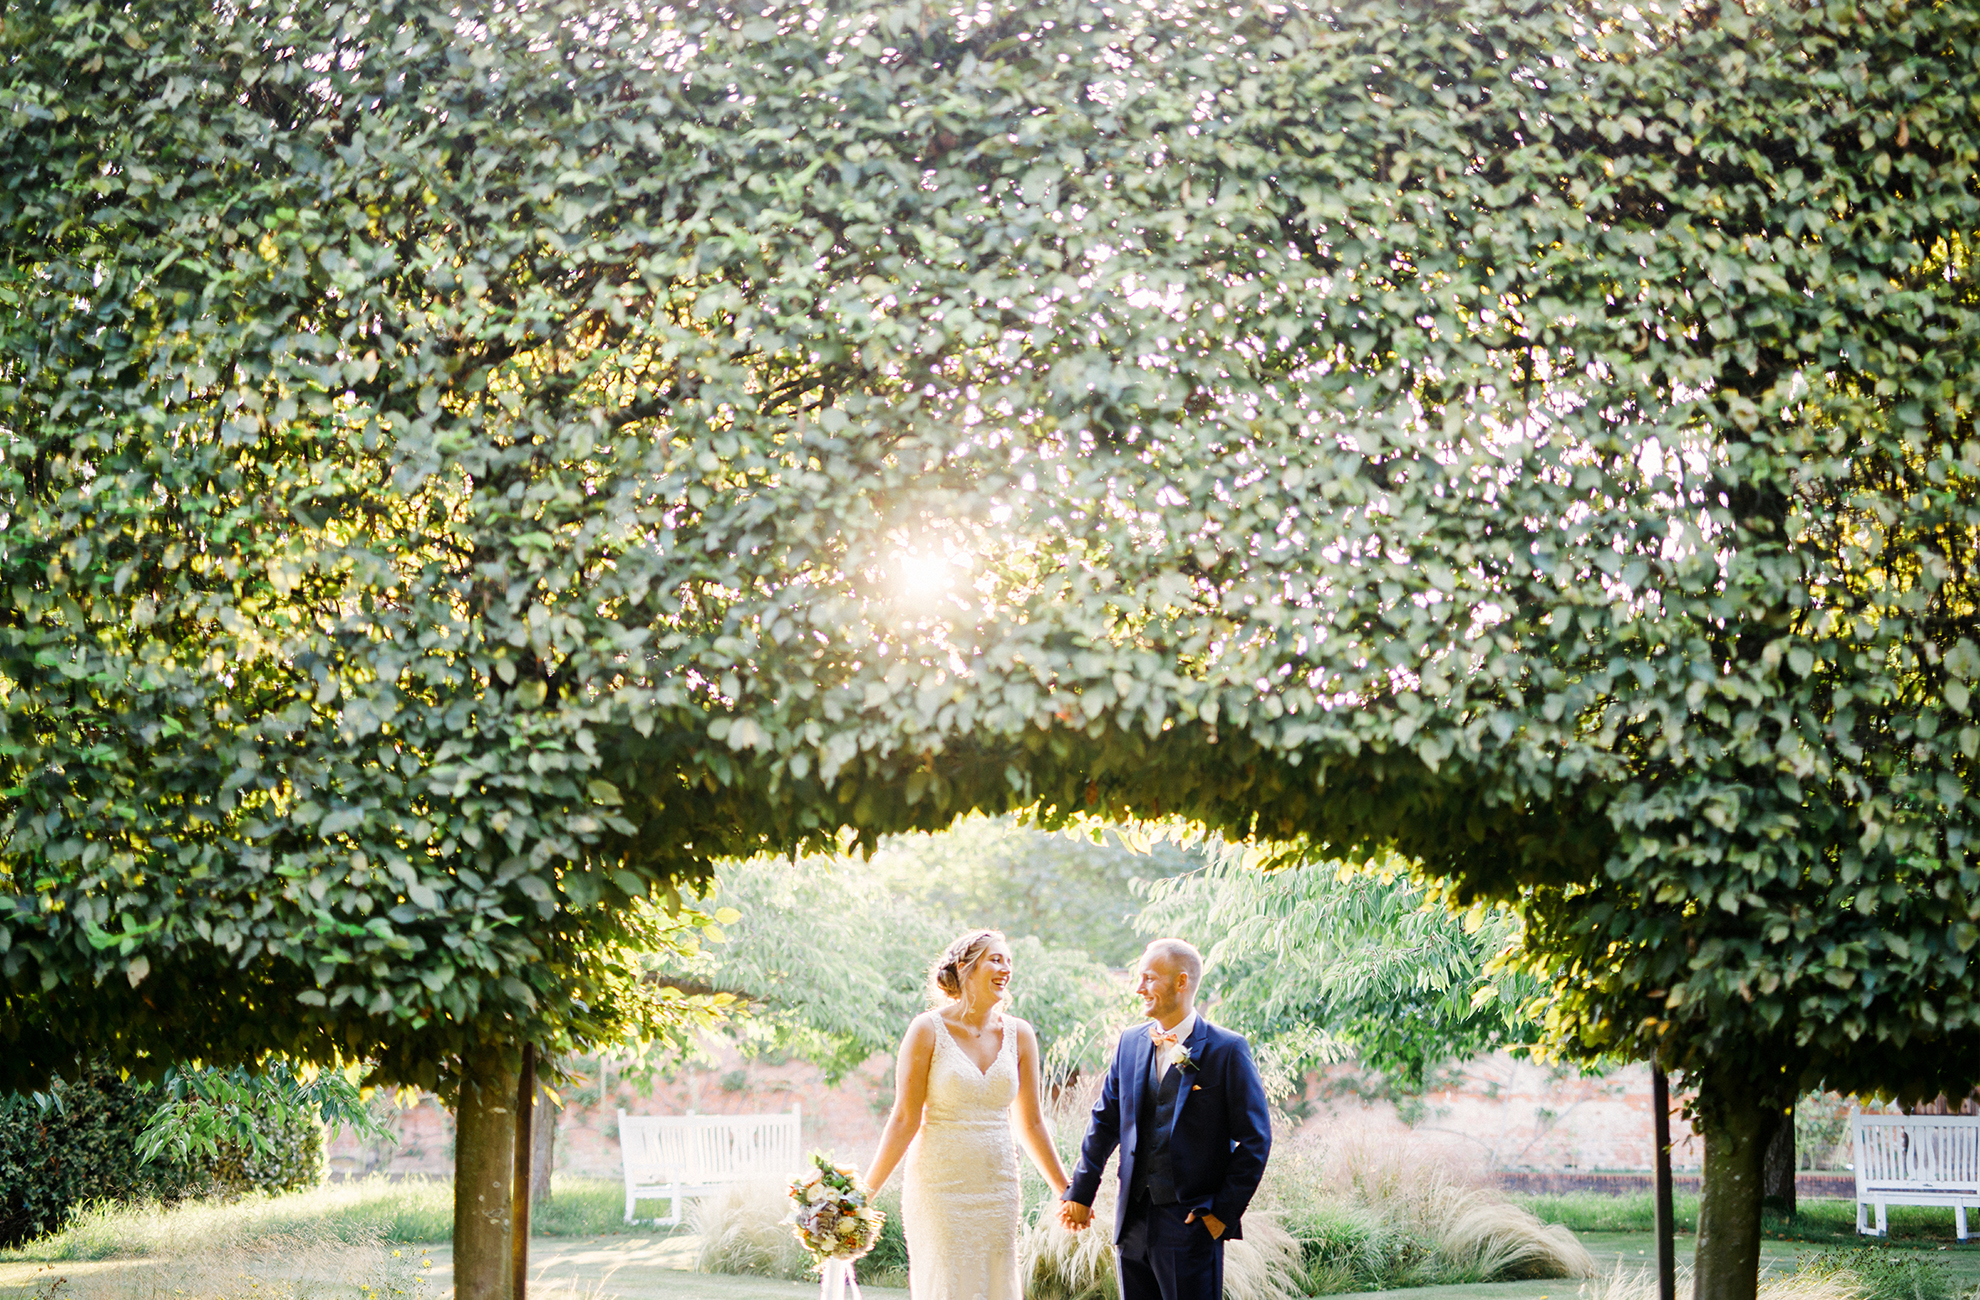 Summer Weddings - Make The Most Of The Gardens at Combermere Abbey